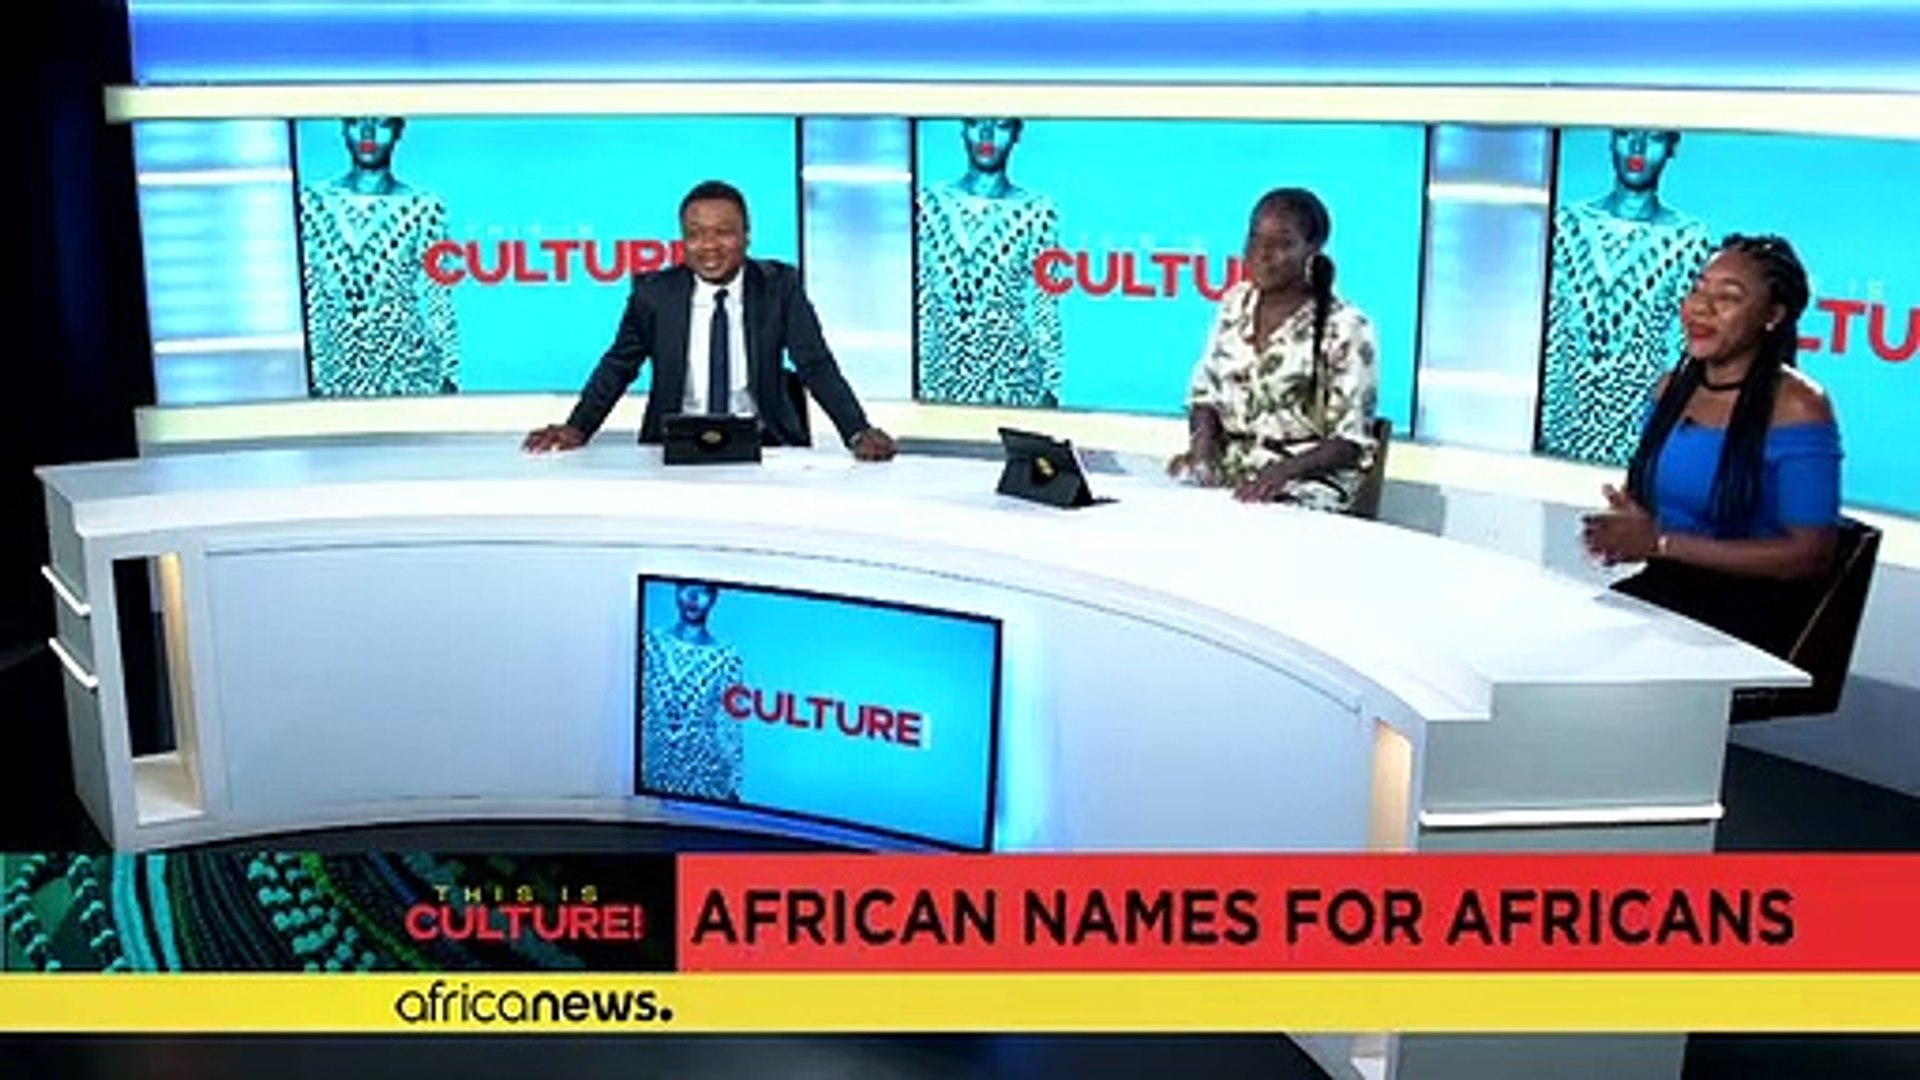 Africans should have African names [Culture]